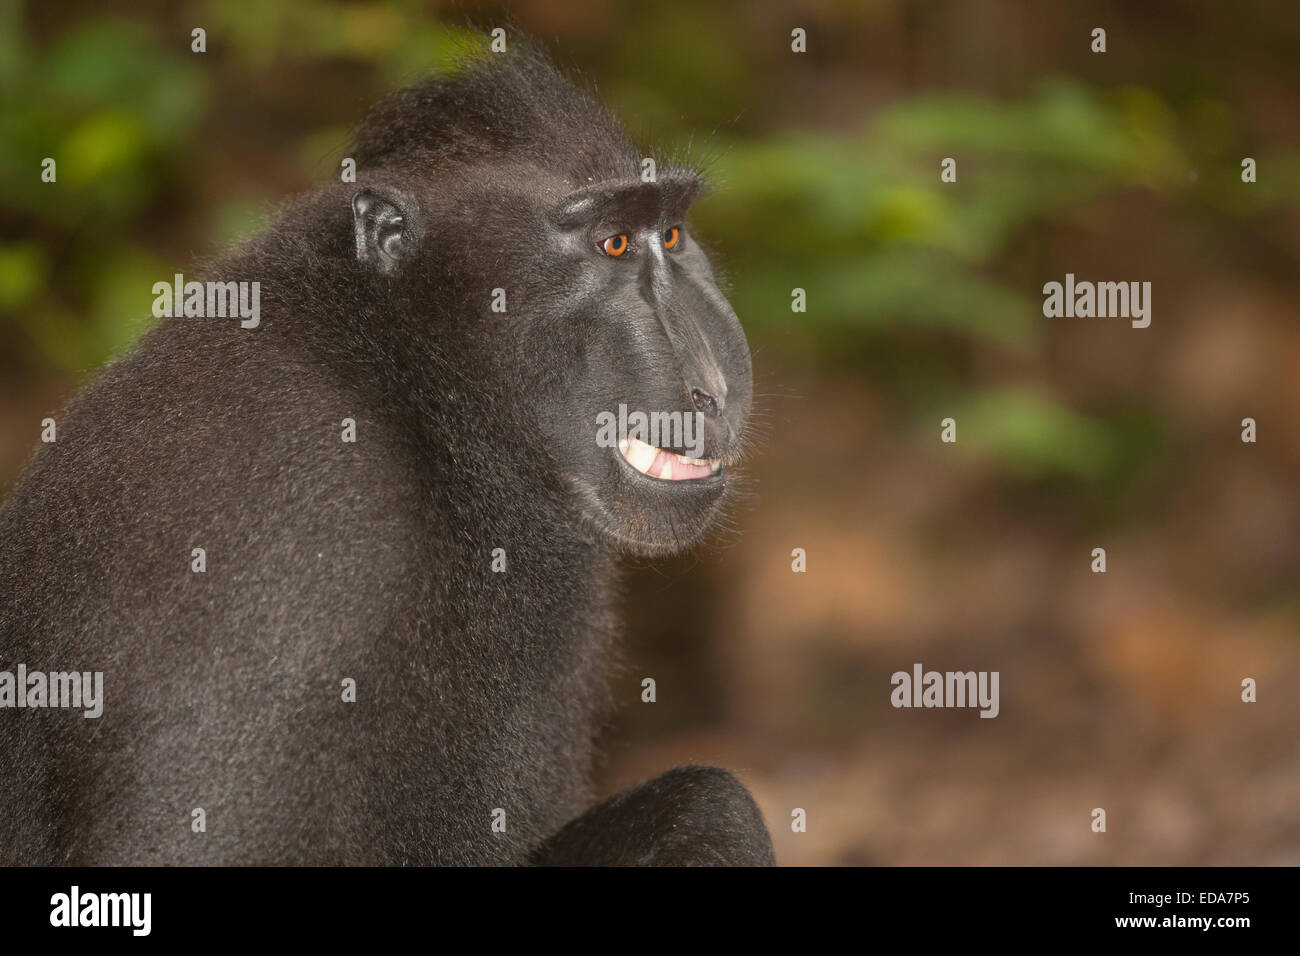 Close-up on Black crested macaque - Stock Image